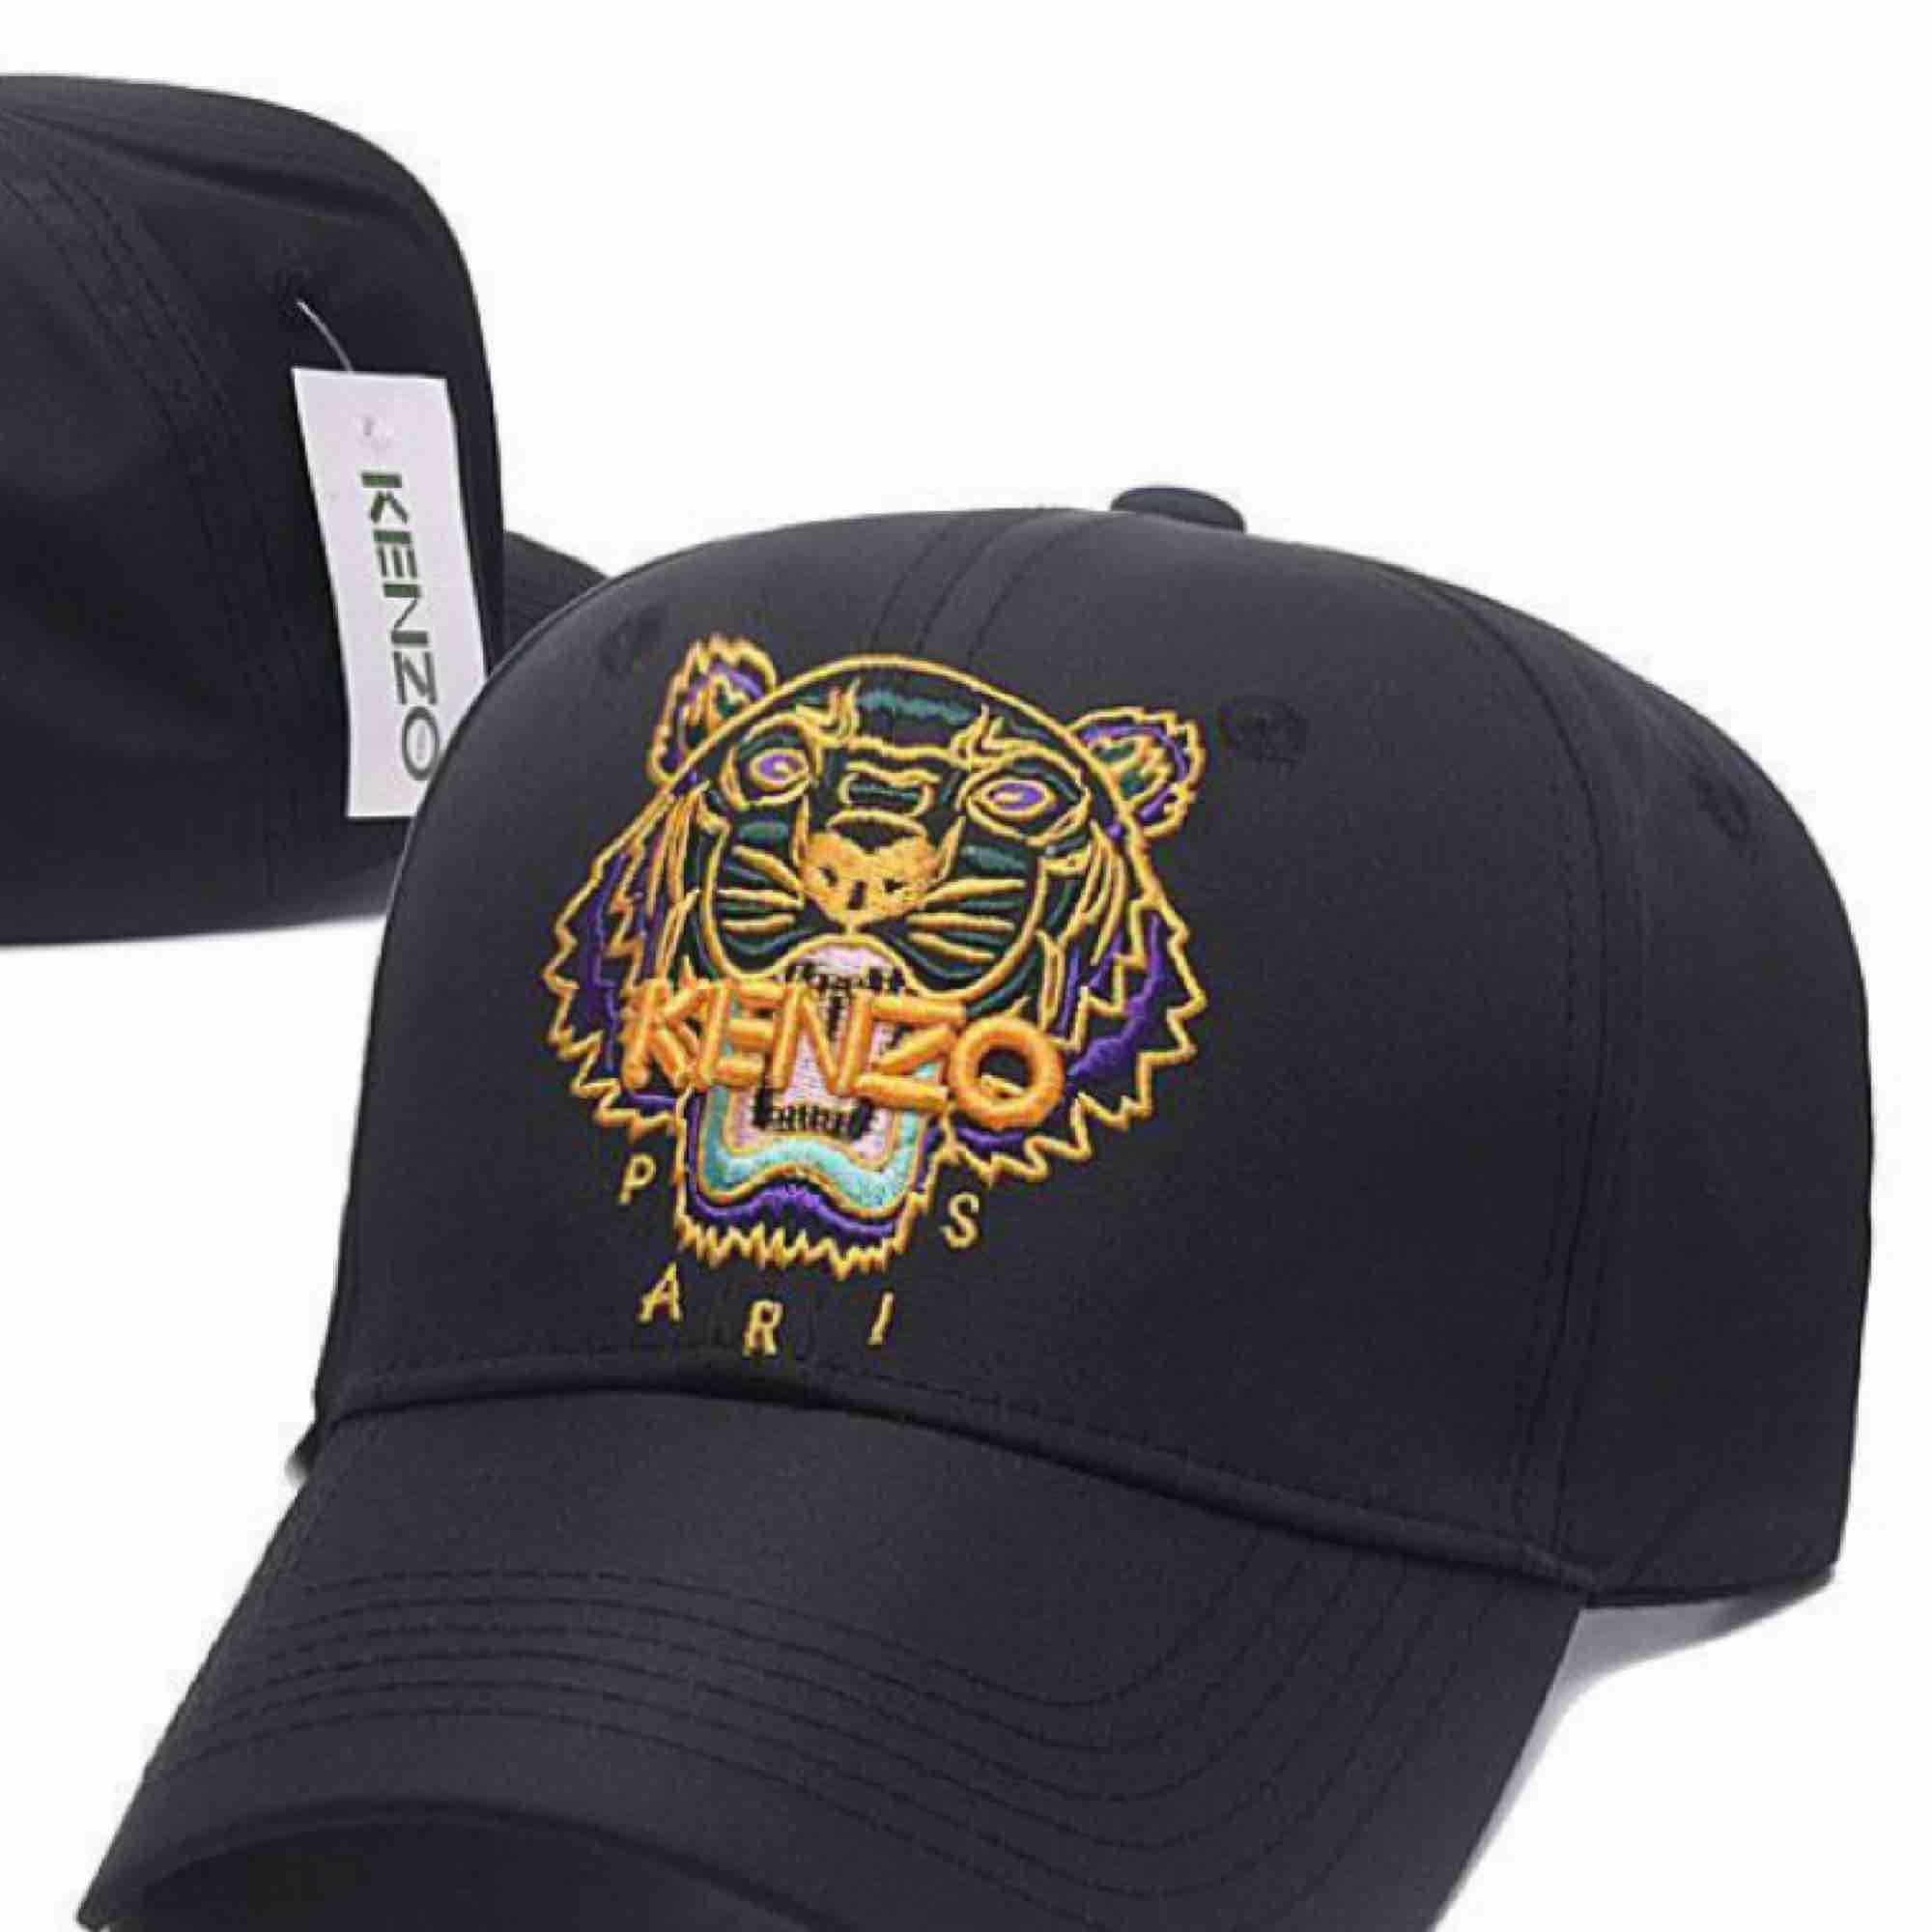 Tiger cap sportswear.  Tiger in neon colours and tube embroidery, Brings colour to any outfit.  KENZO logo.  Adjustable Velcro strap.. Accessoarer.